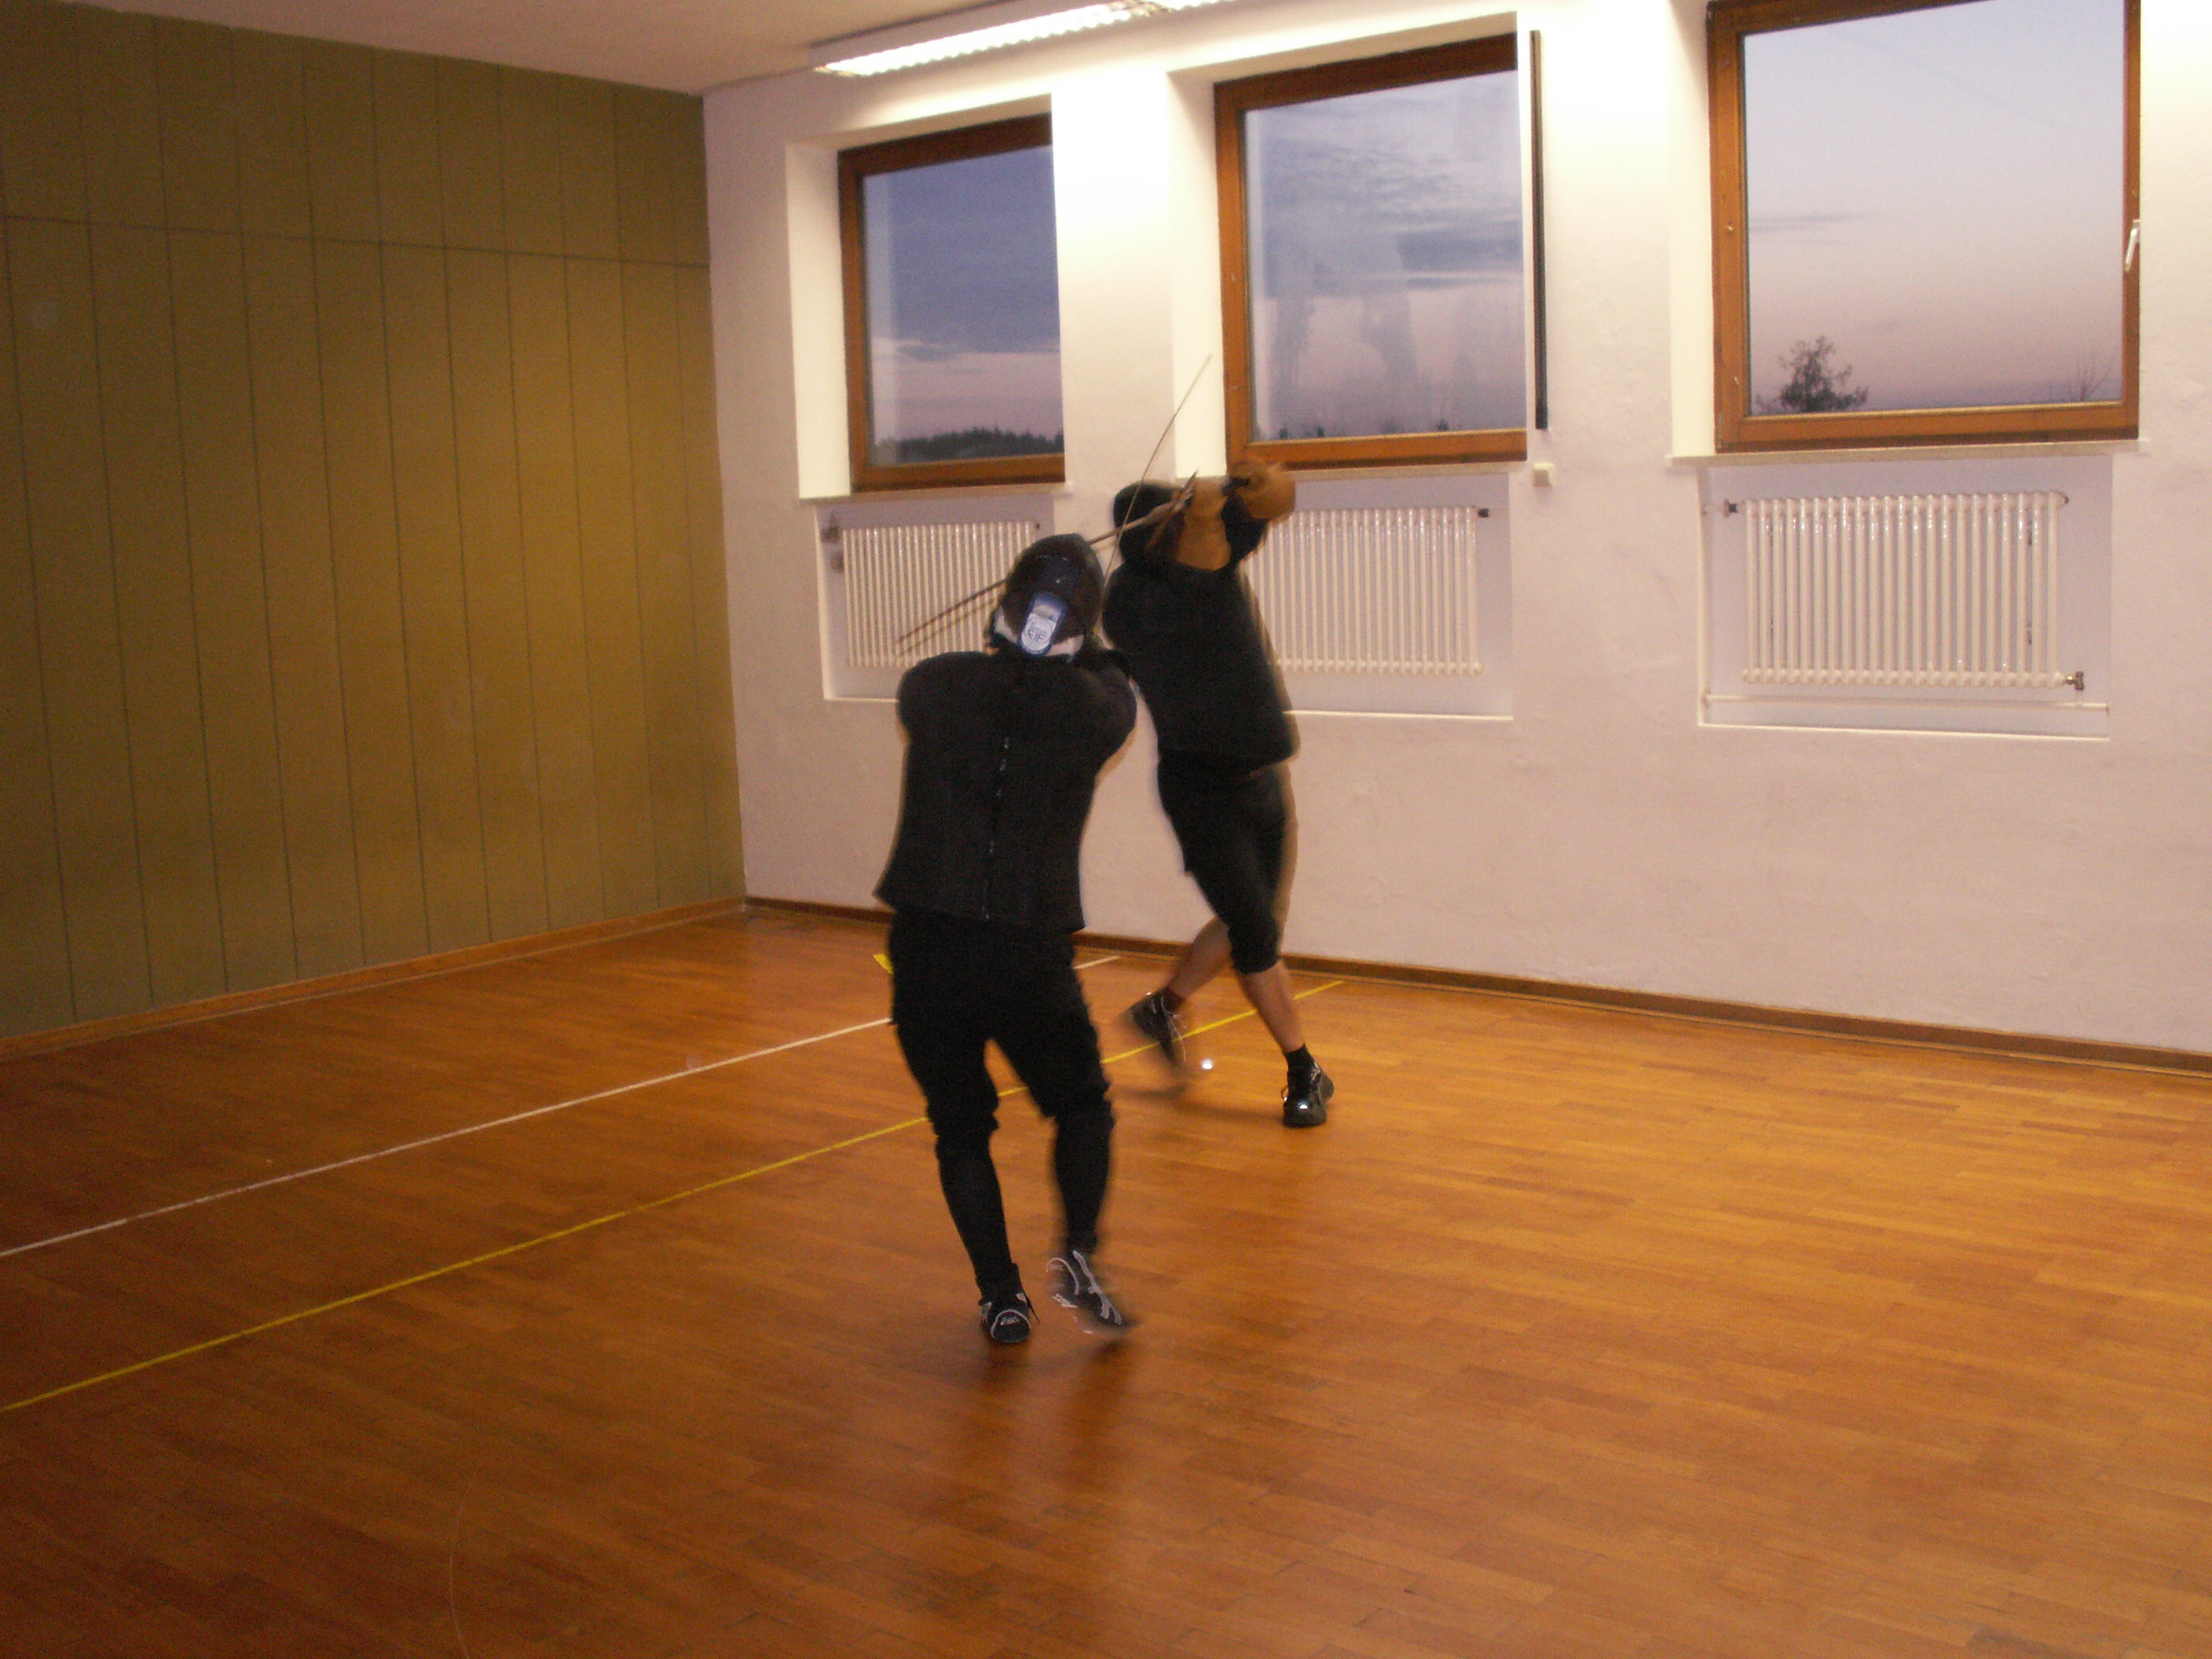 Two longsword fencers in action!